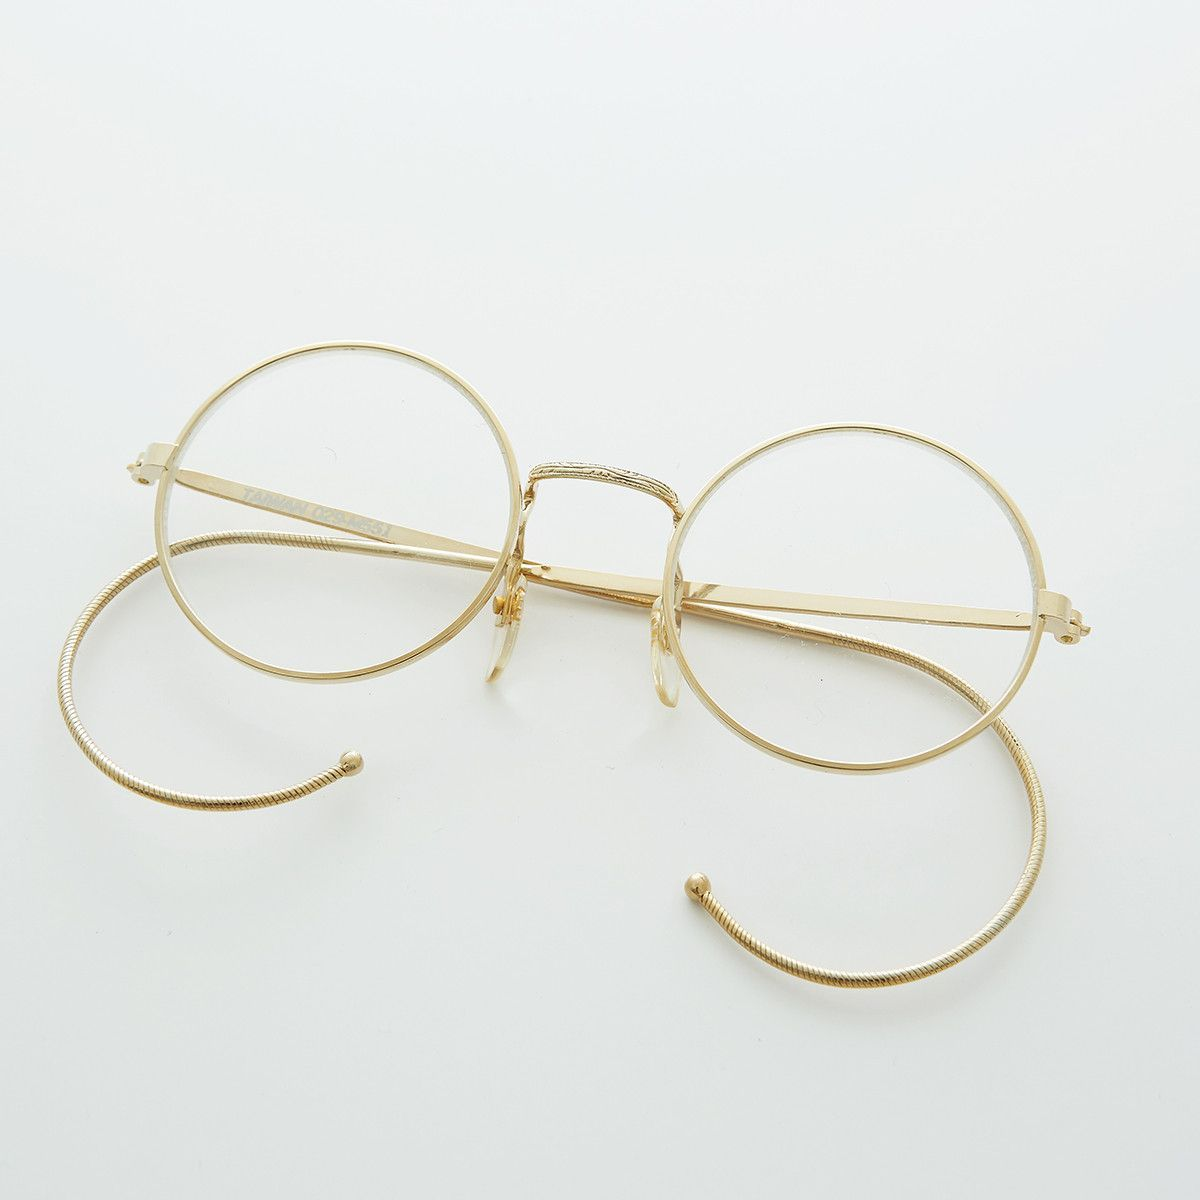 d3699b9414f7 Round John Lennon Victorian Spectacle Vintage Eyeglasses with Cable Temples  NOS -RUDY